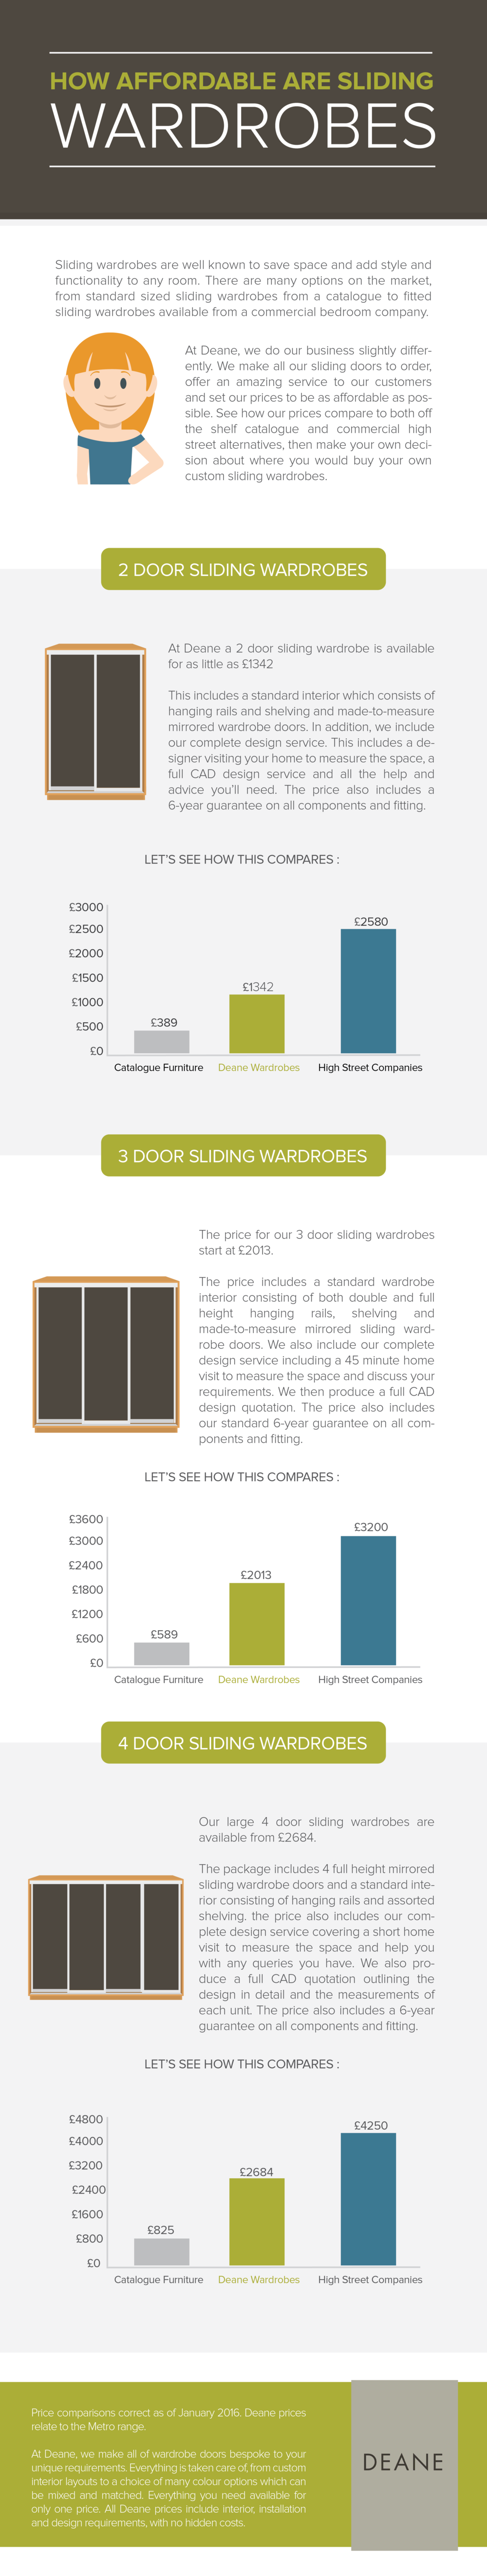 how affordable are sliding wardrobes